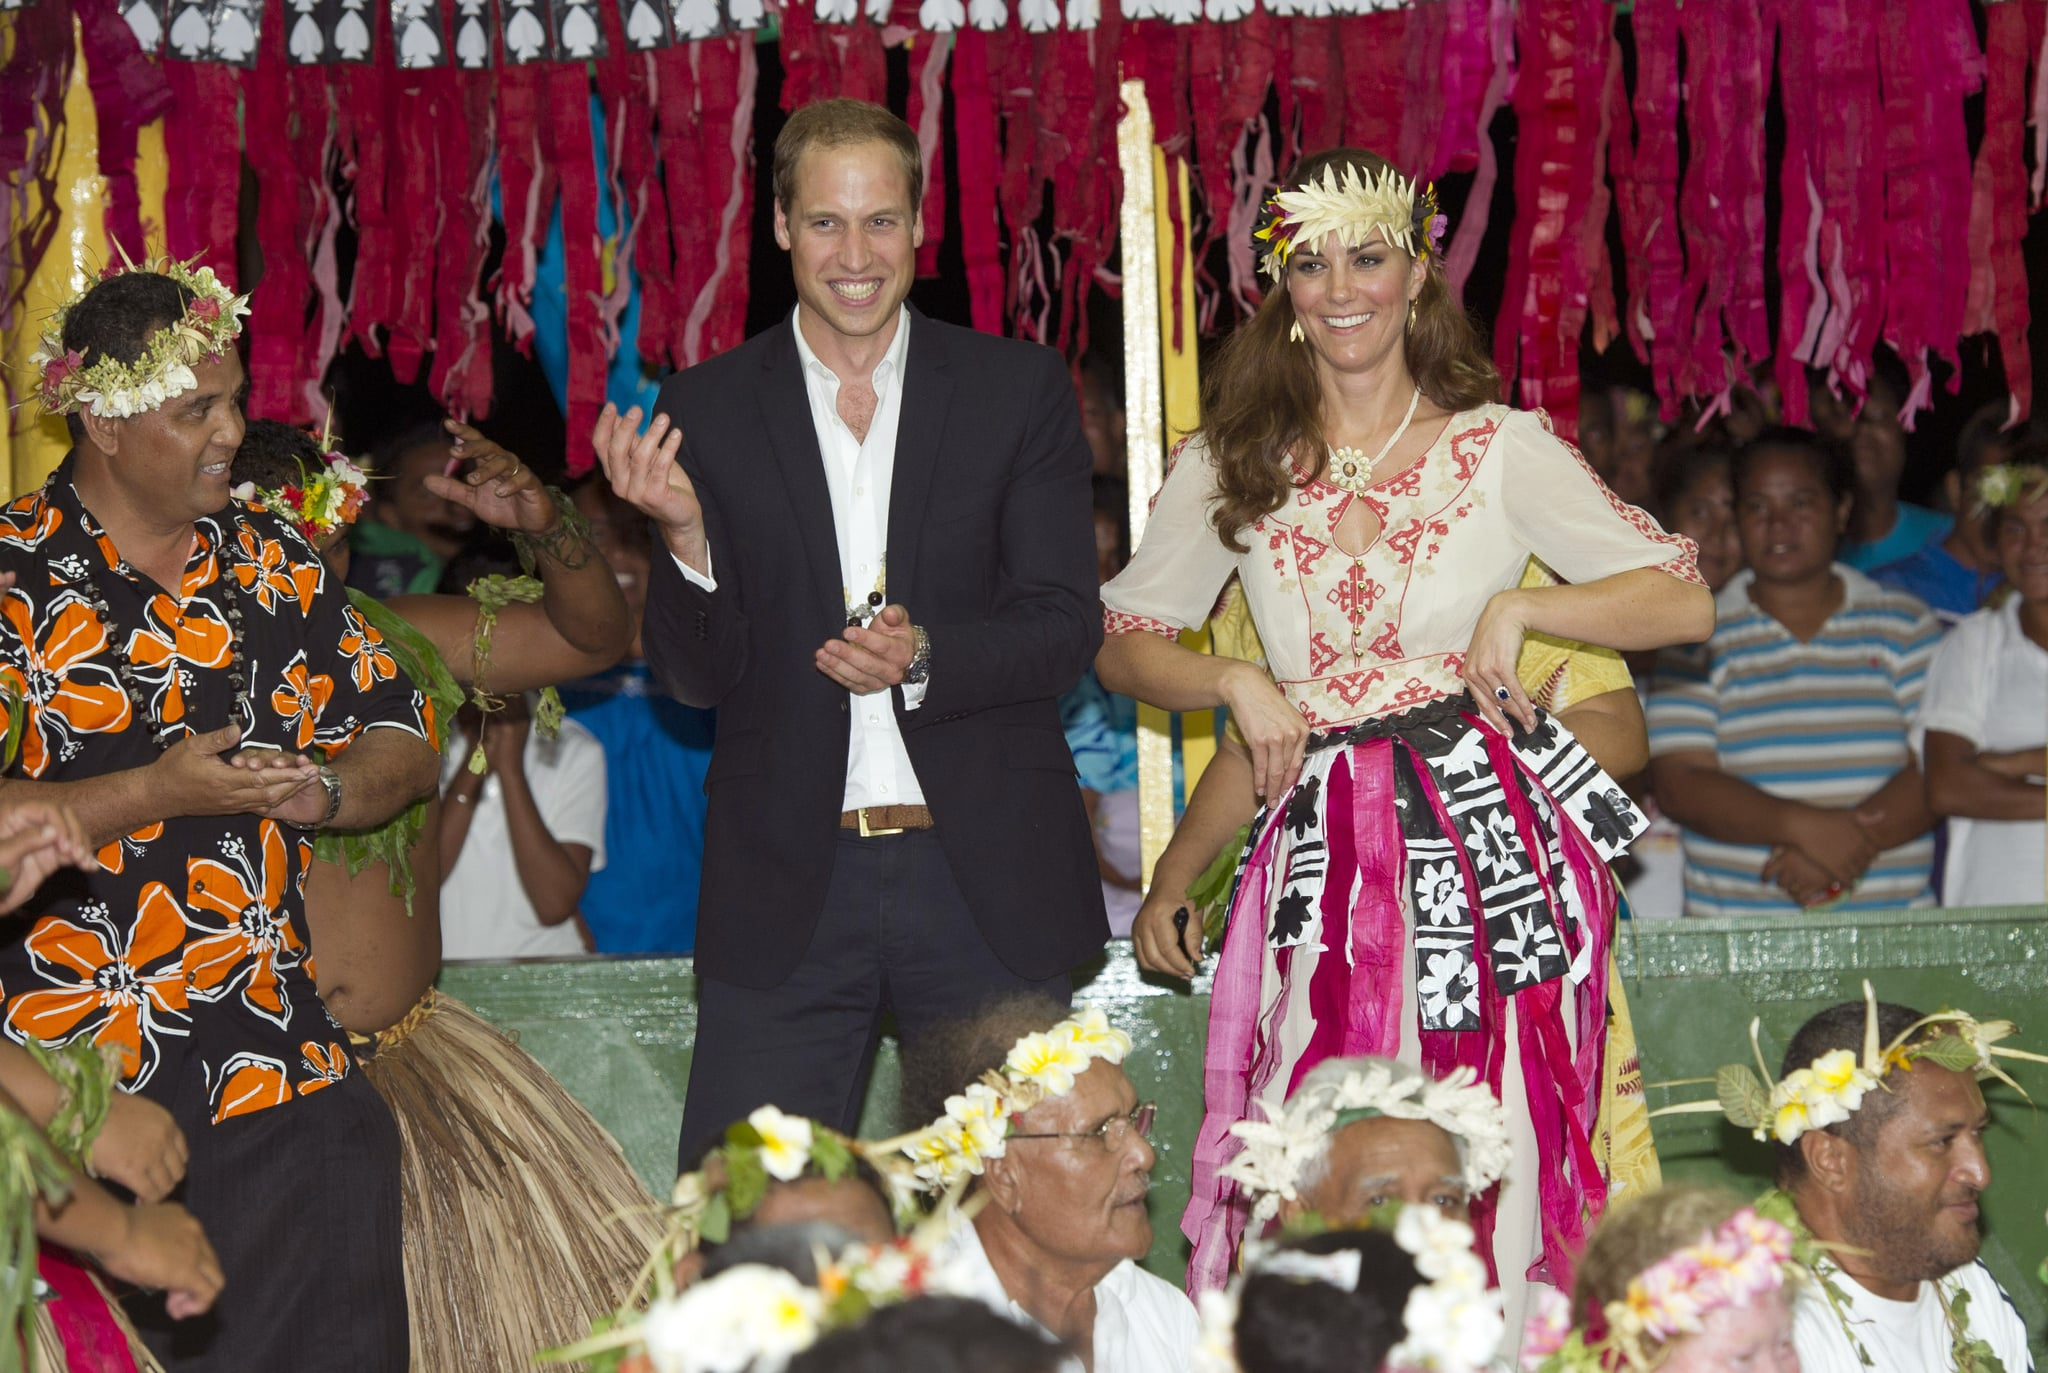 William and Kate flashed big smiles on day eight of their 2012 tour for the queen's Diamond Jubilee.